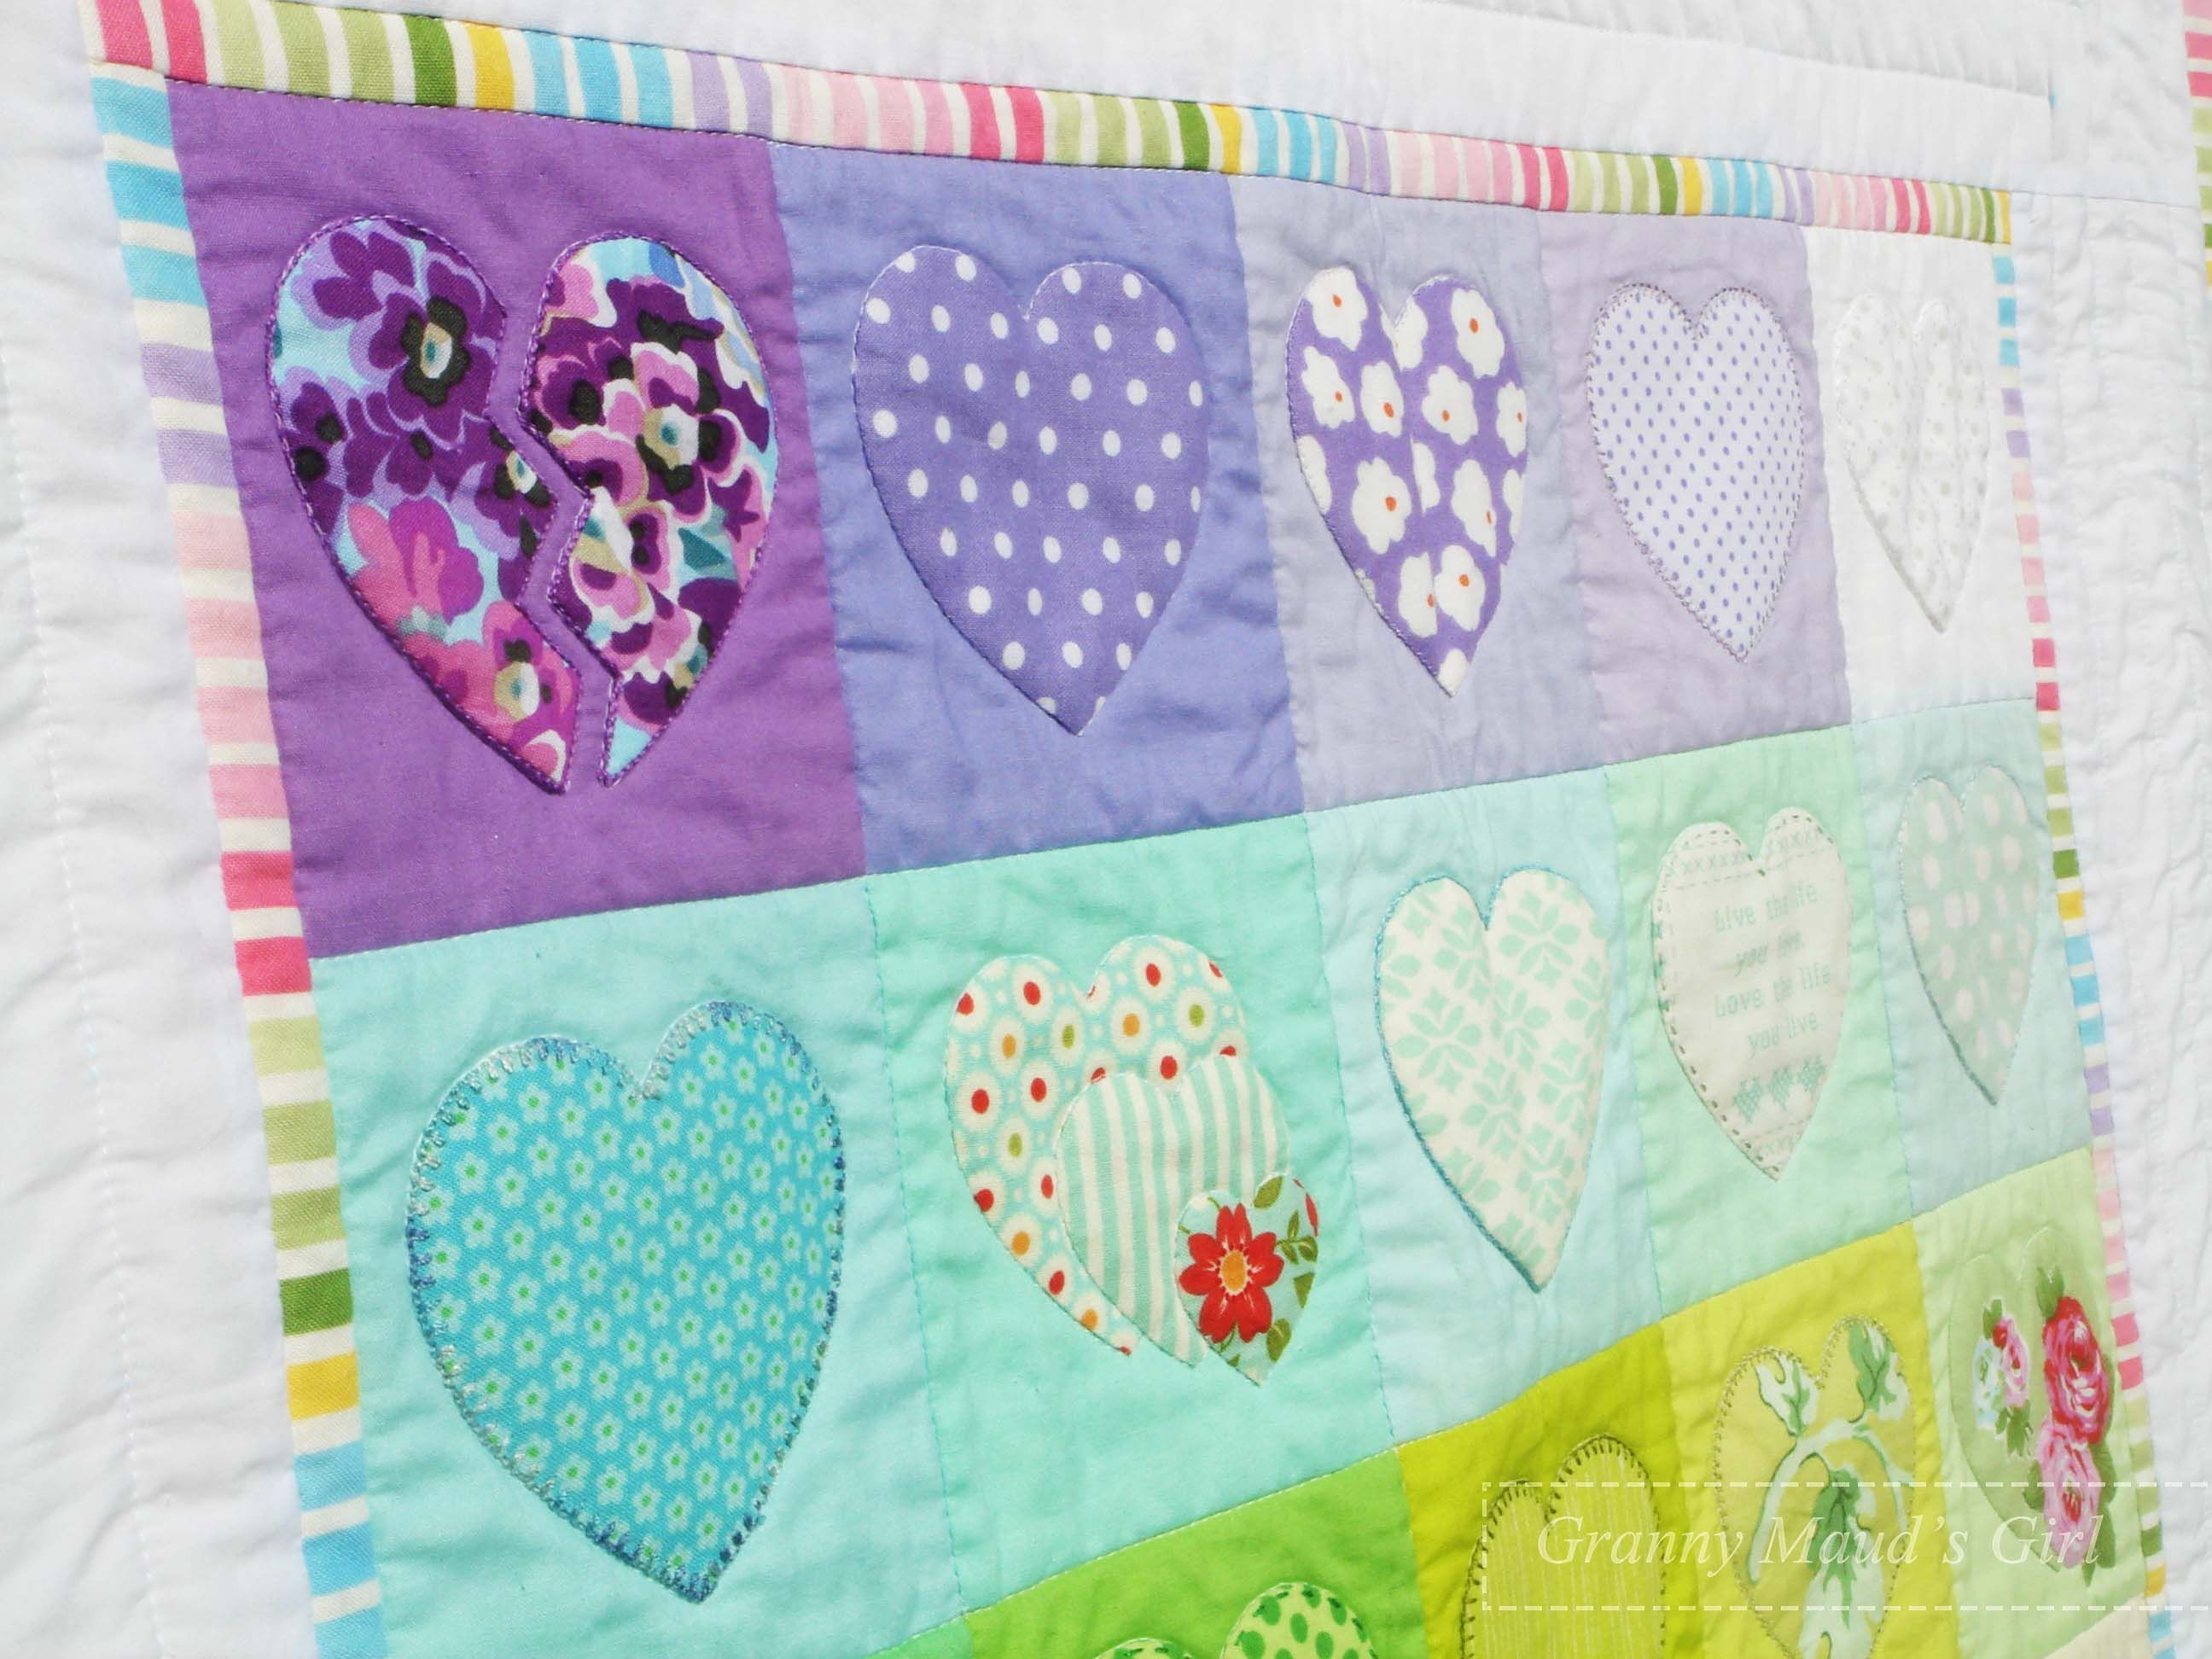 Appliqué rainbow baby quilt quilts baby quilts quilts rainbow baby